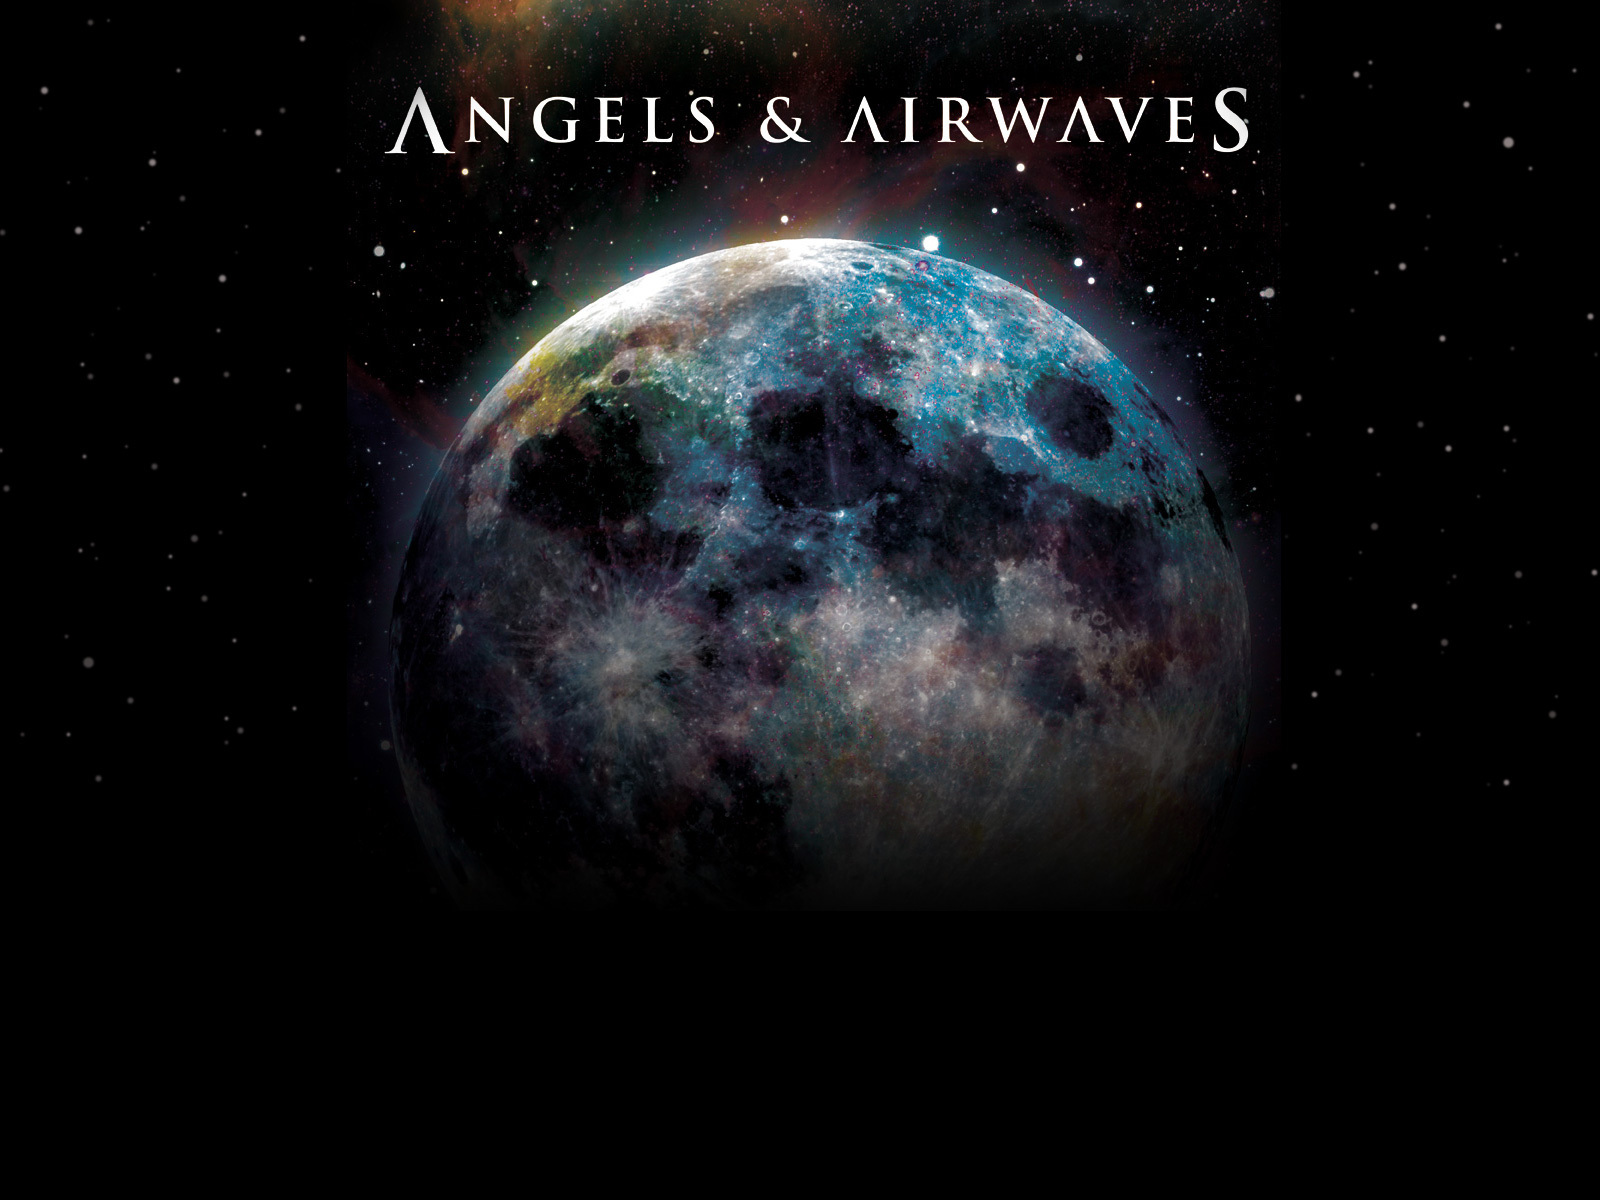 AVA Moon - Angels and Airwaves Wallpaper (1552887) - Fanpop